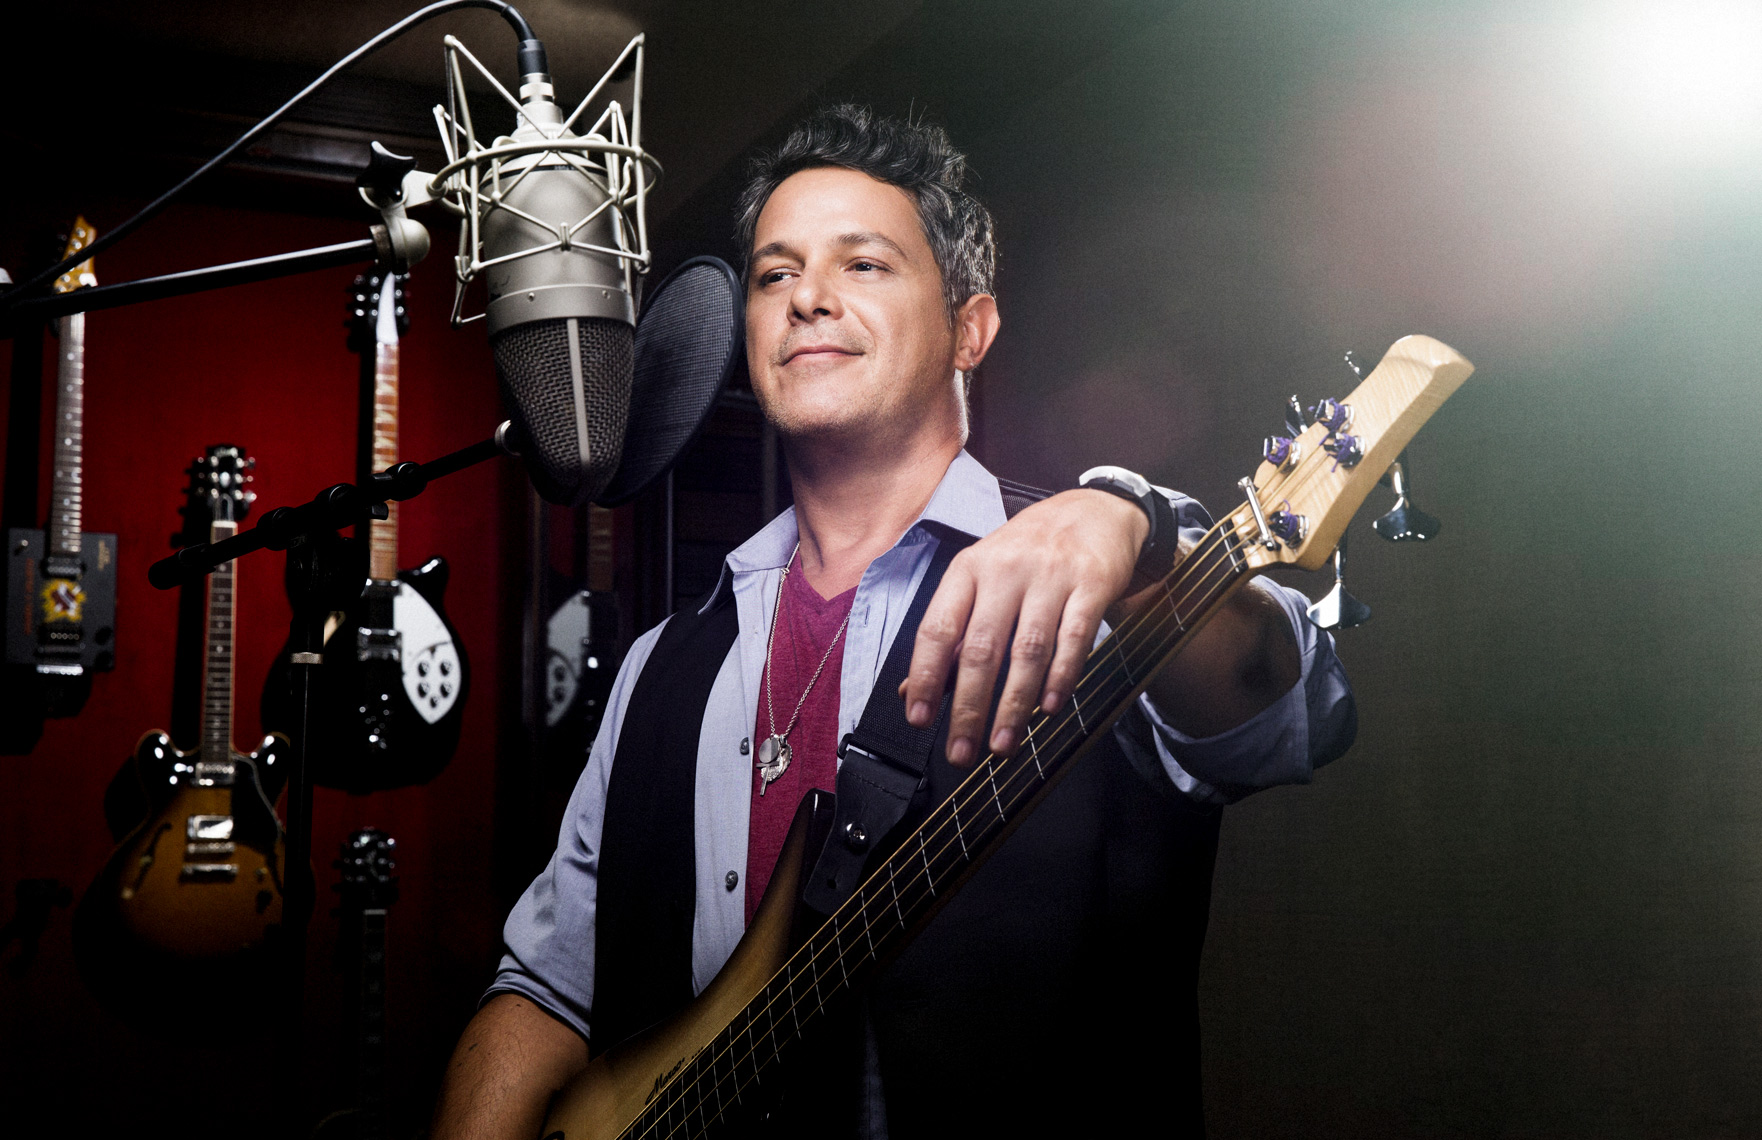 HBO_latino_alejandrosanz_joshmaready_PORTRAITS_061_